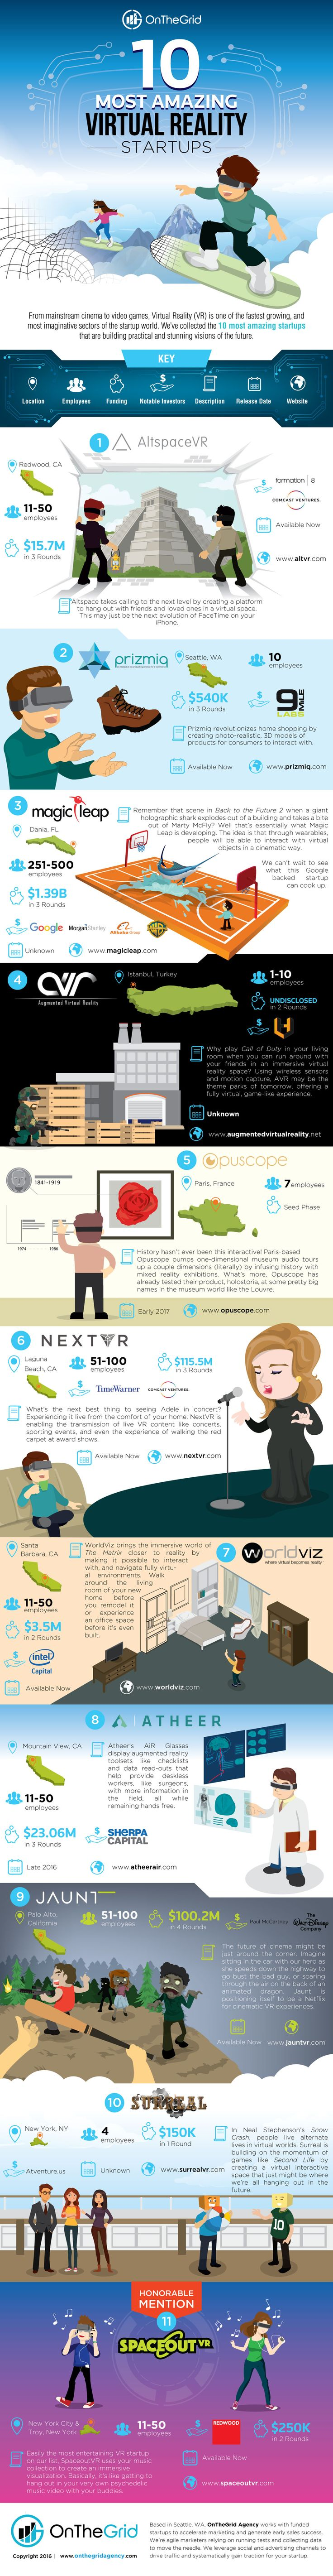 10 Most Amazing Virtual Reality Startups! #infografía #infographic #Business…